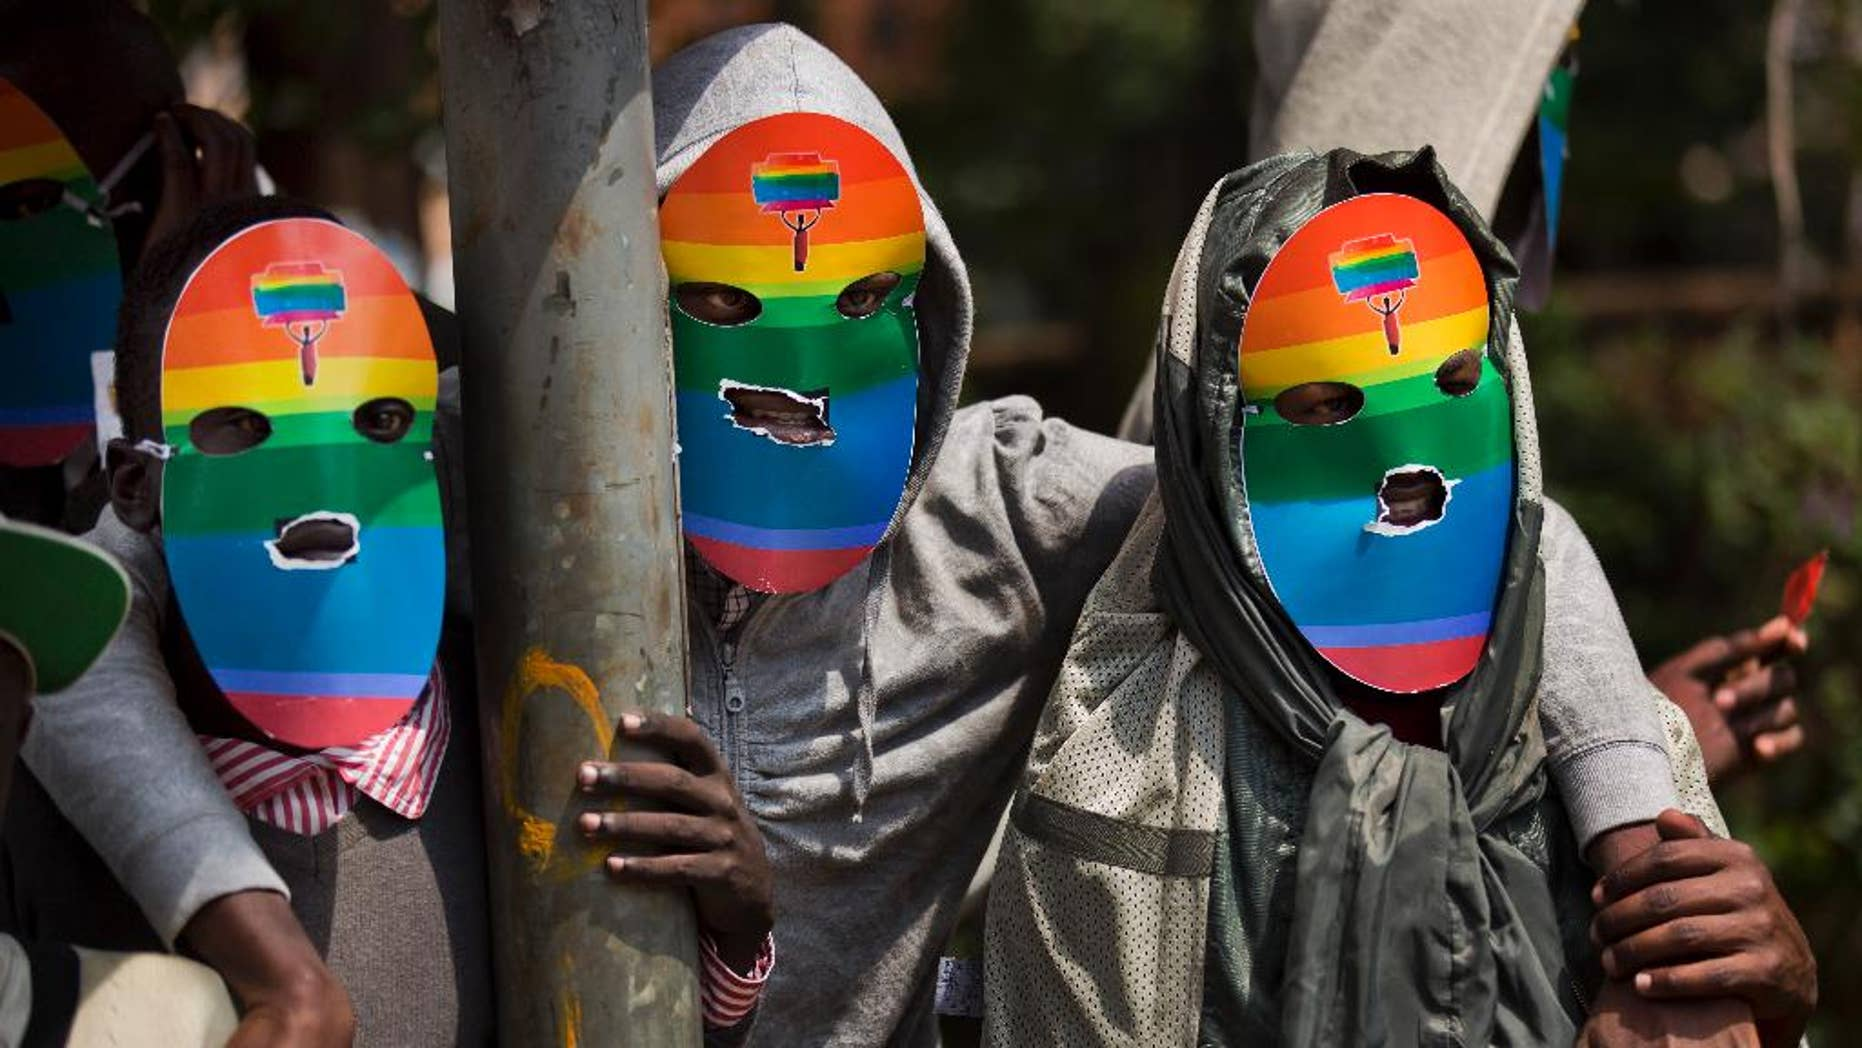 """FILE - In this Monday, Feb. 10, 2014 file photo, Kenyan gays and lesbians and others supporting their cause wear masks to preserve their anonymity as they stage a rare protest. Human Rights Watch is urging an end to """"forced anal examinations"""" with a report documenting them in eight countries, mostly in Africa, saying the practice is based on flawed ideas about supposedly proving homosexual conduct. (AP Photo/Ben Curtis, File)"""